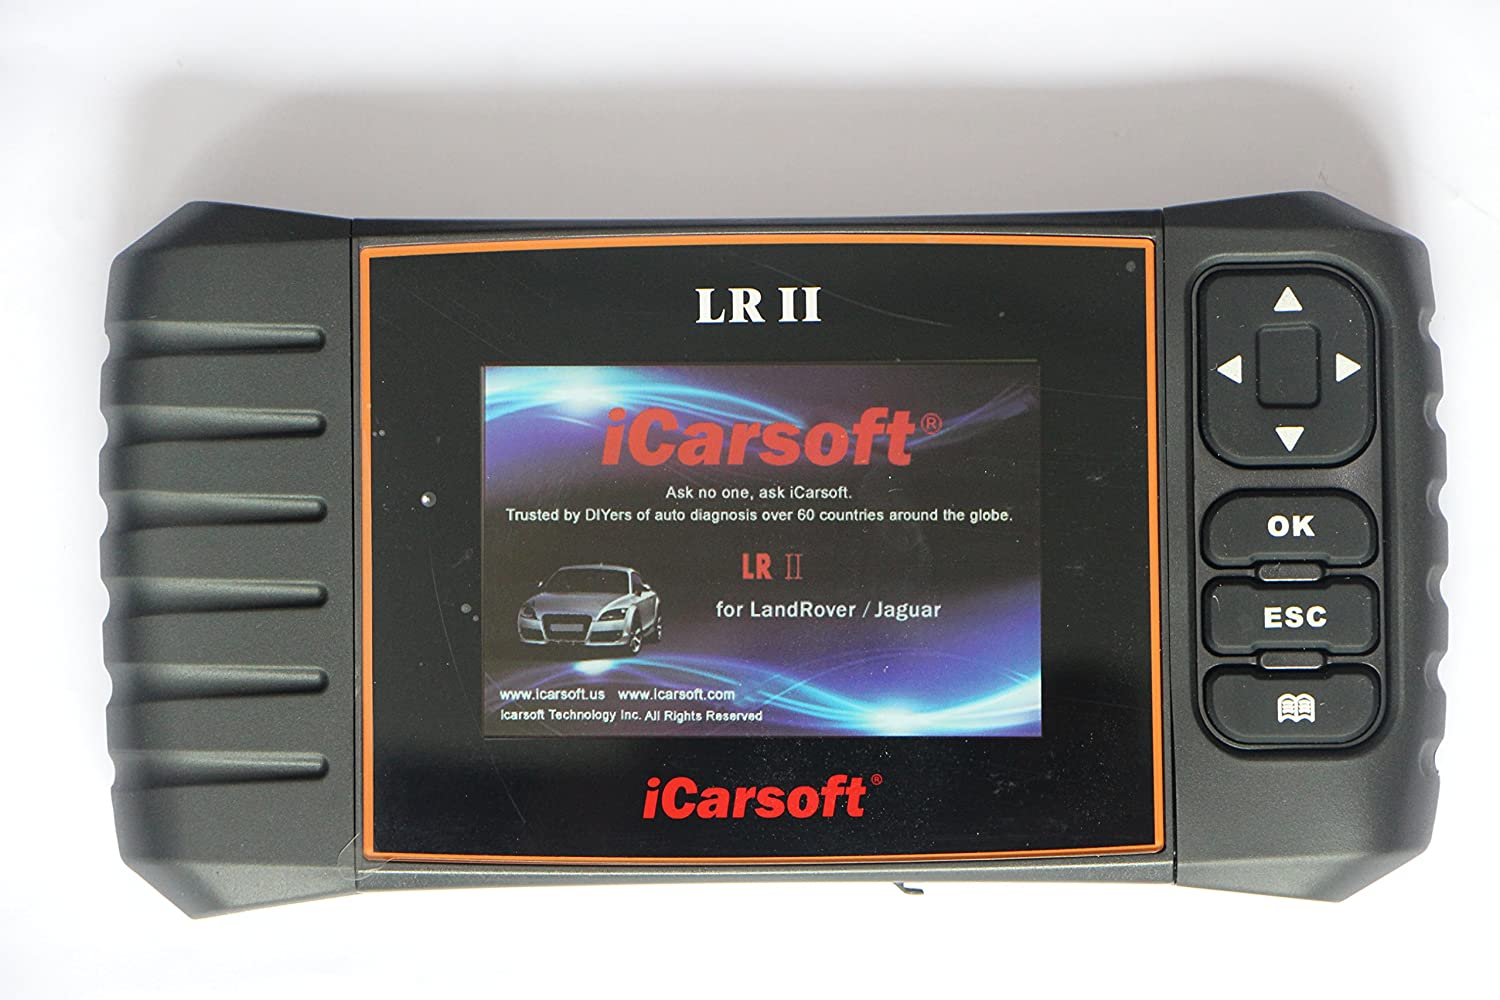 ICarsoft LR II Outil de diagnostic scanner avec support antid/érapant pour Landrover//Jaguar